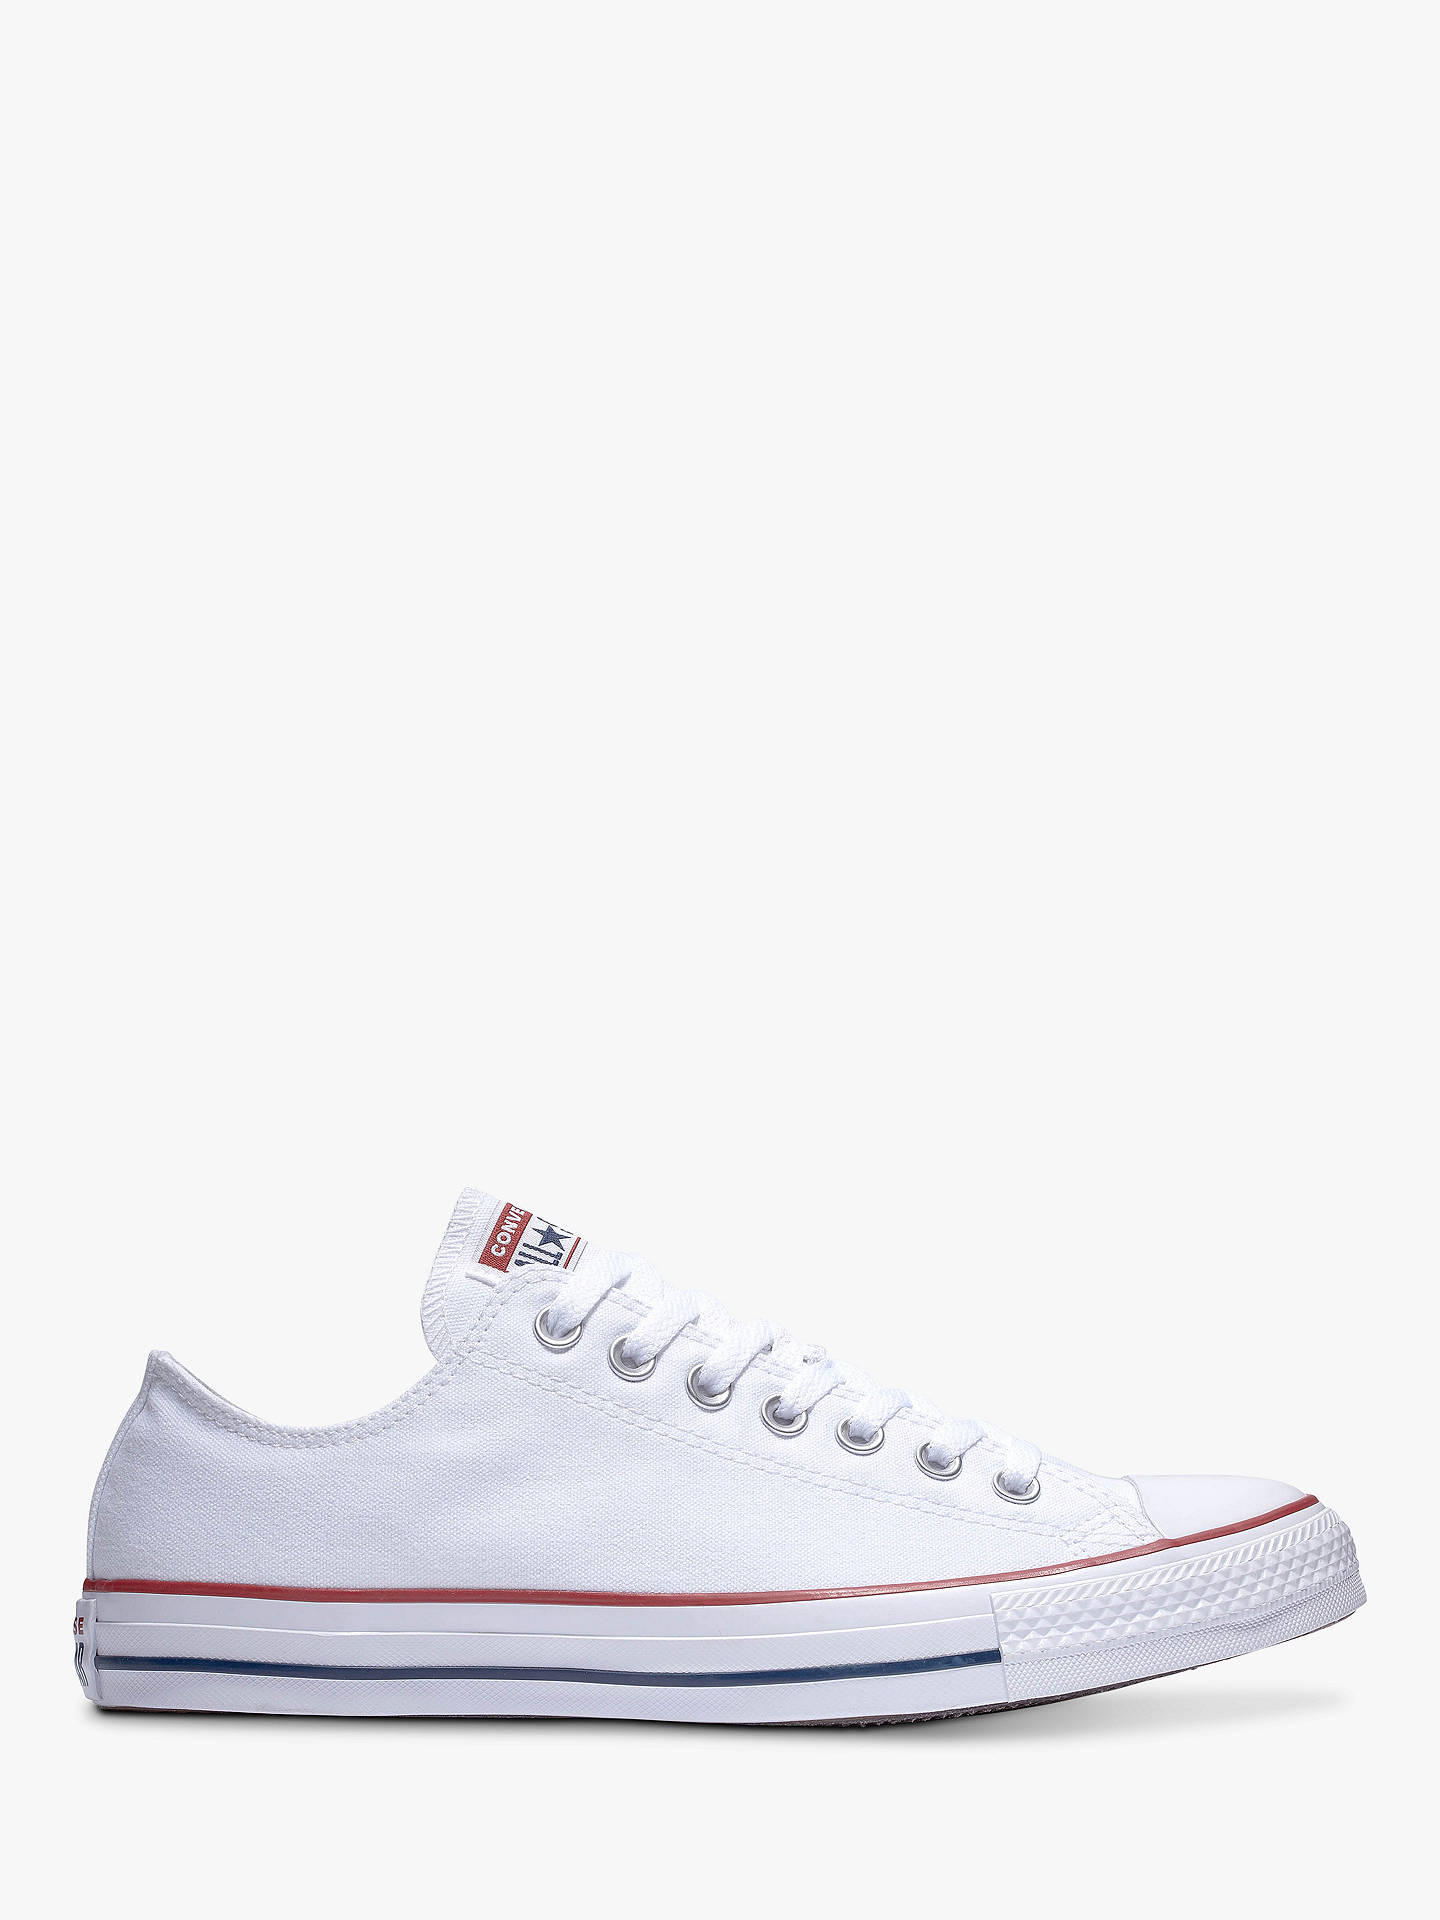 7b808223f8ca Converse Chuck Taylor All Star Canvas Ox Low-Top Trainers at John ...